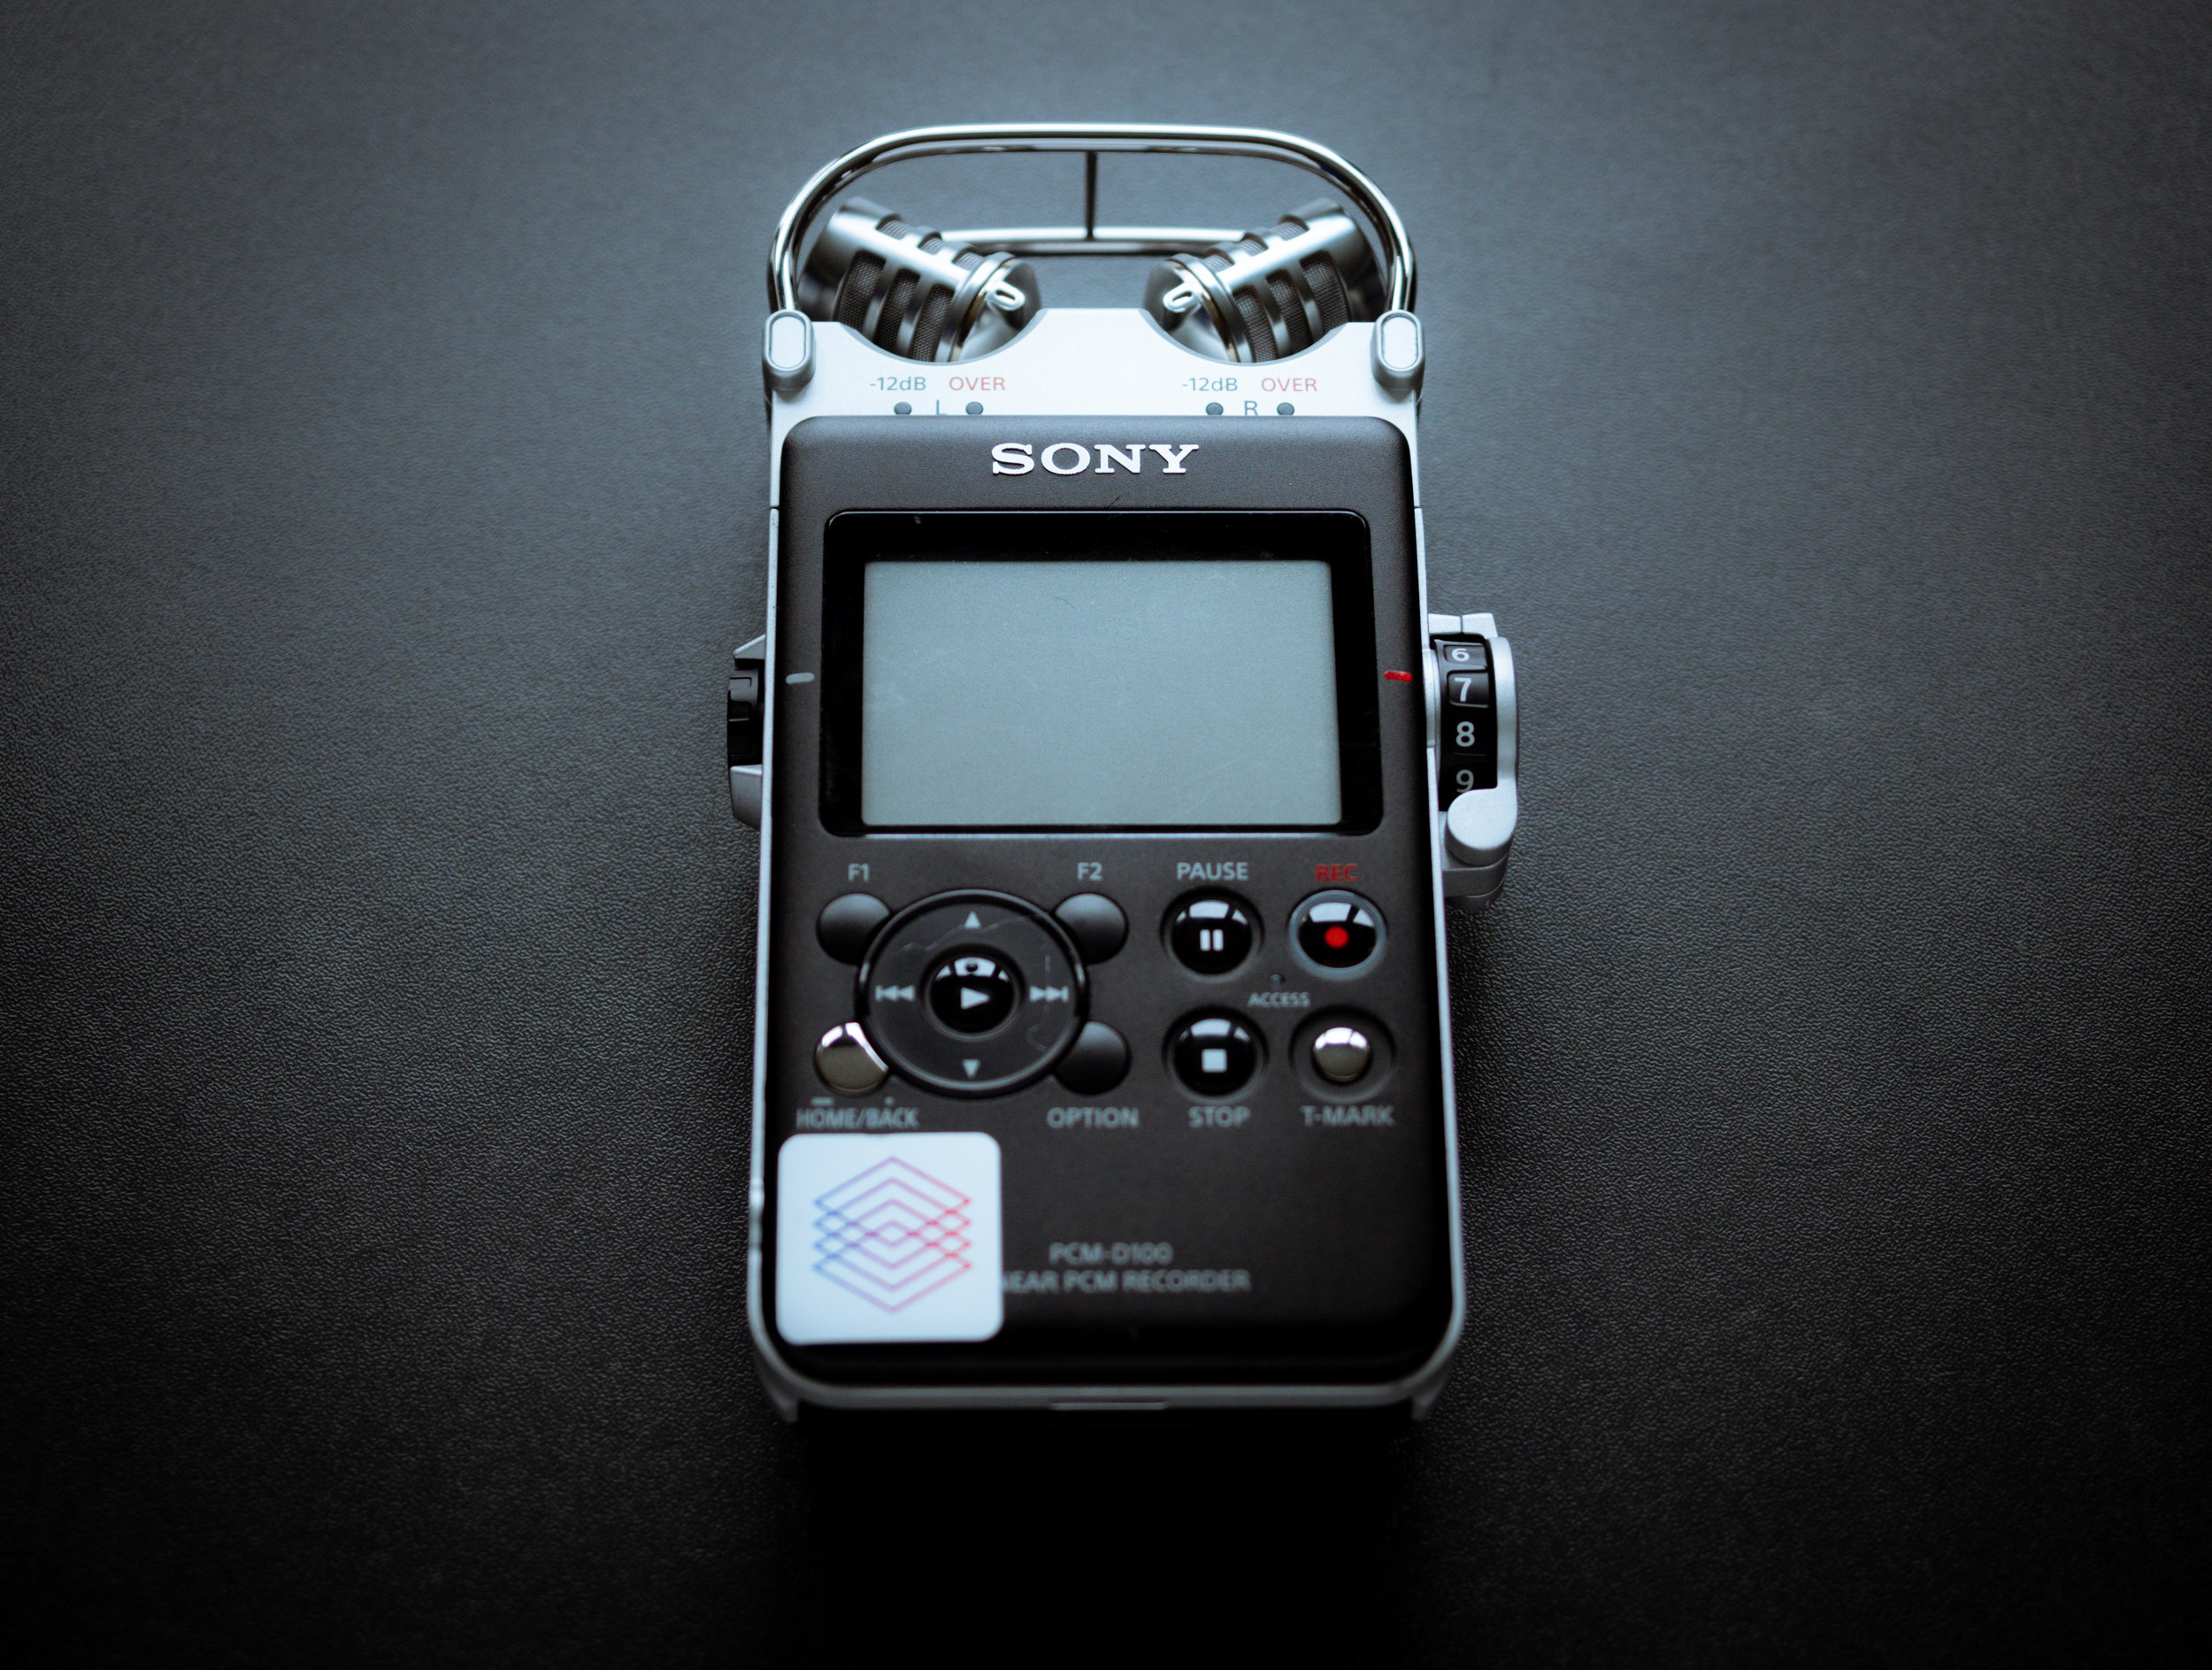 Handheld recorder review and comparison — Mindful Audio